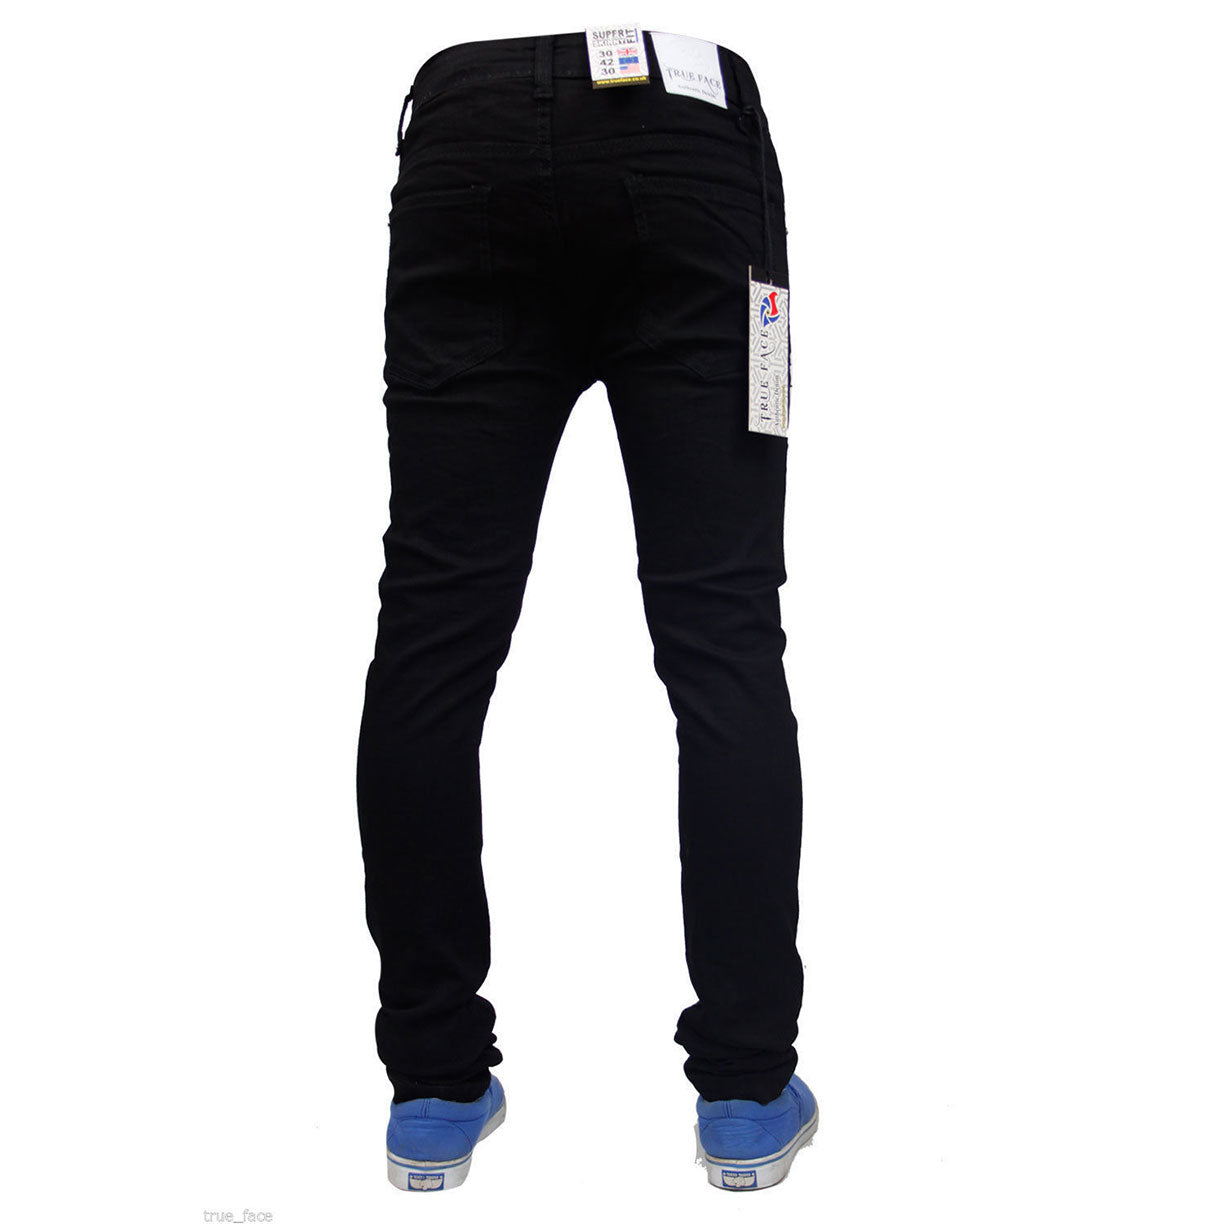 True Face Skinny Jeans TF021 Black